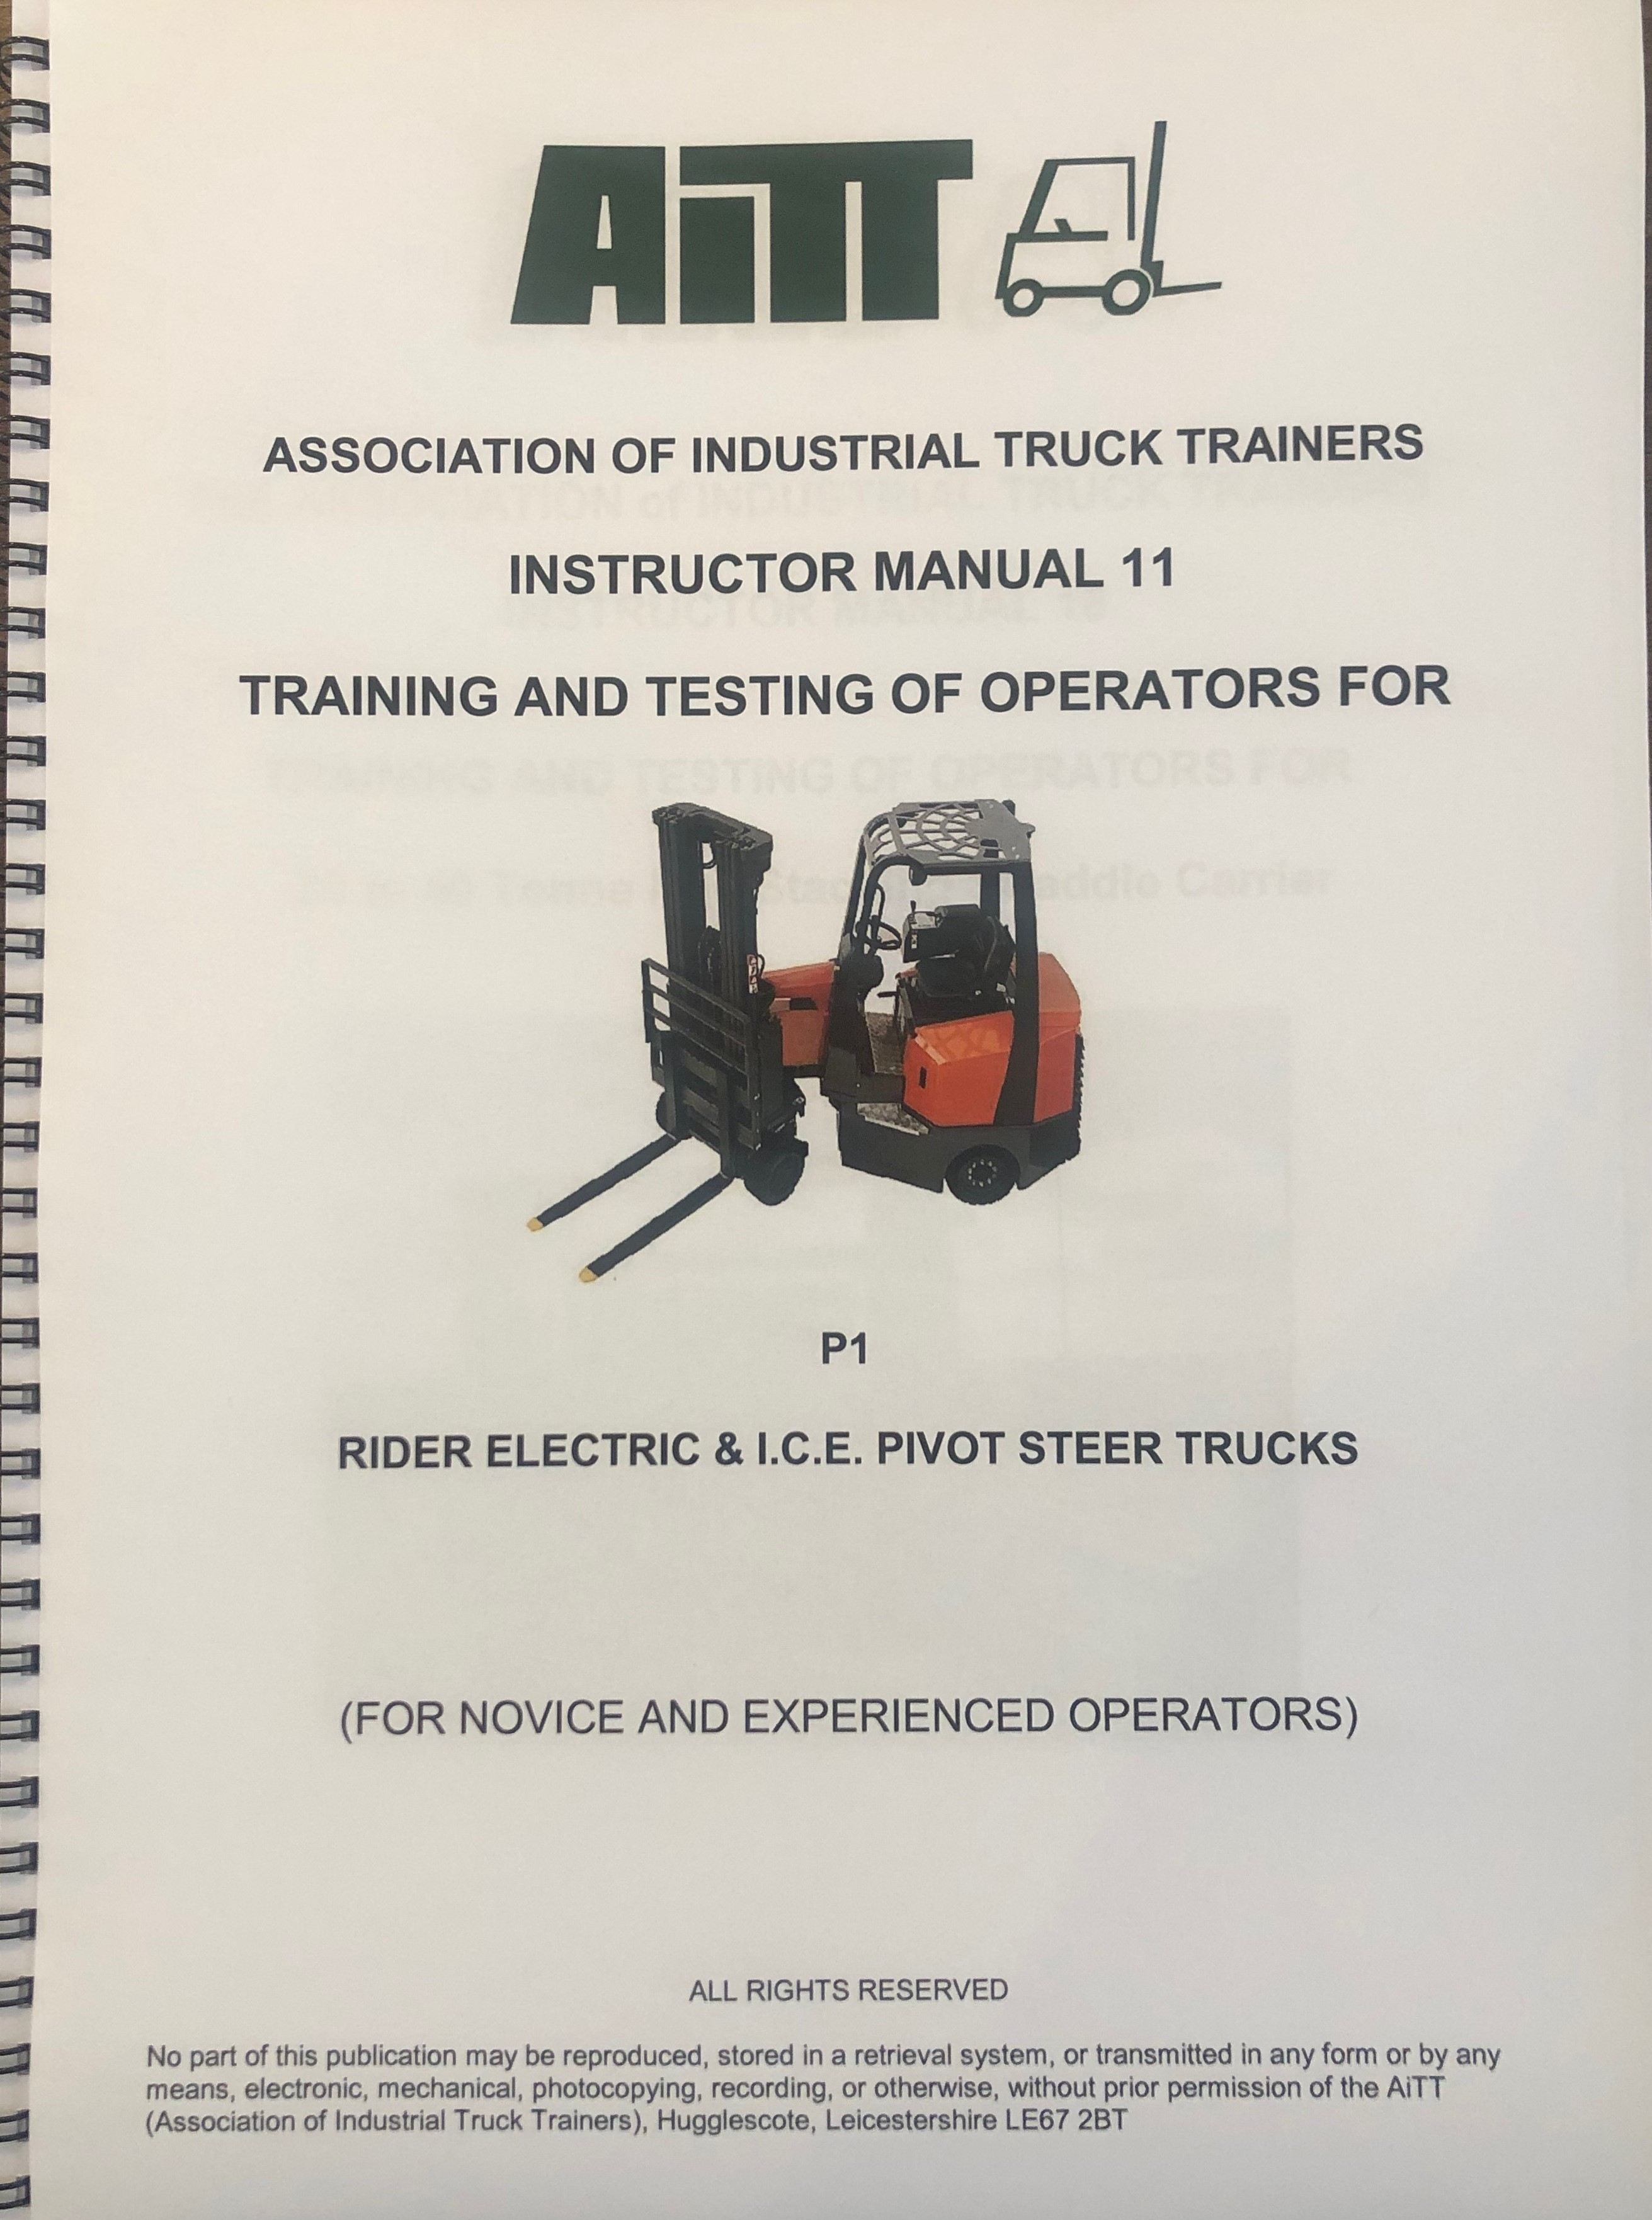 Instructor Manual 11 - P1 image